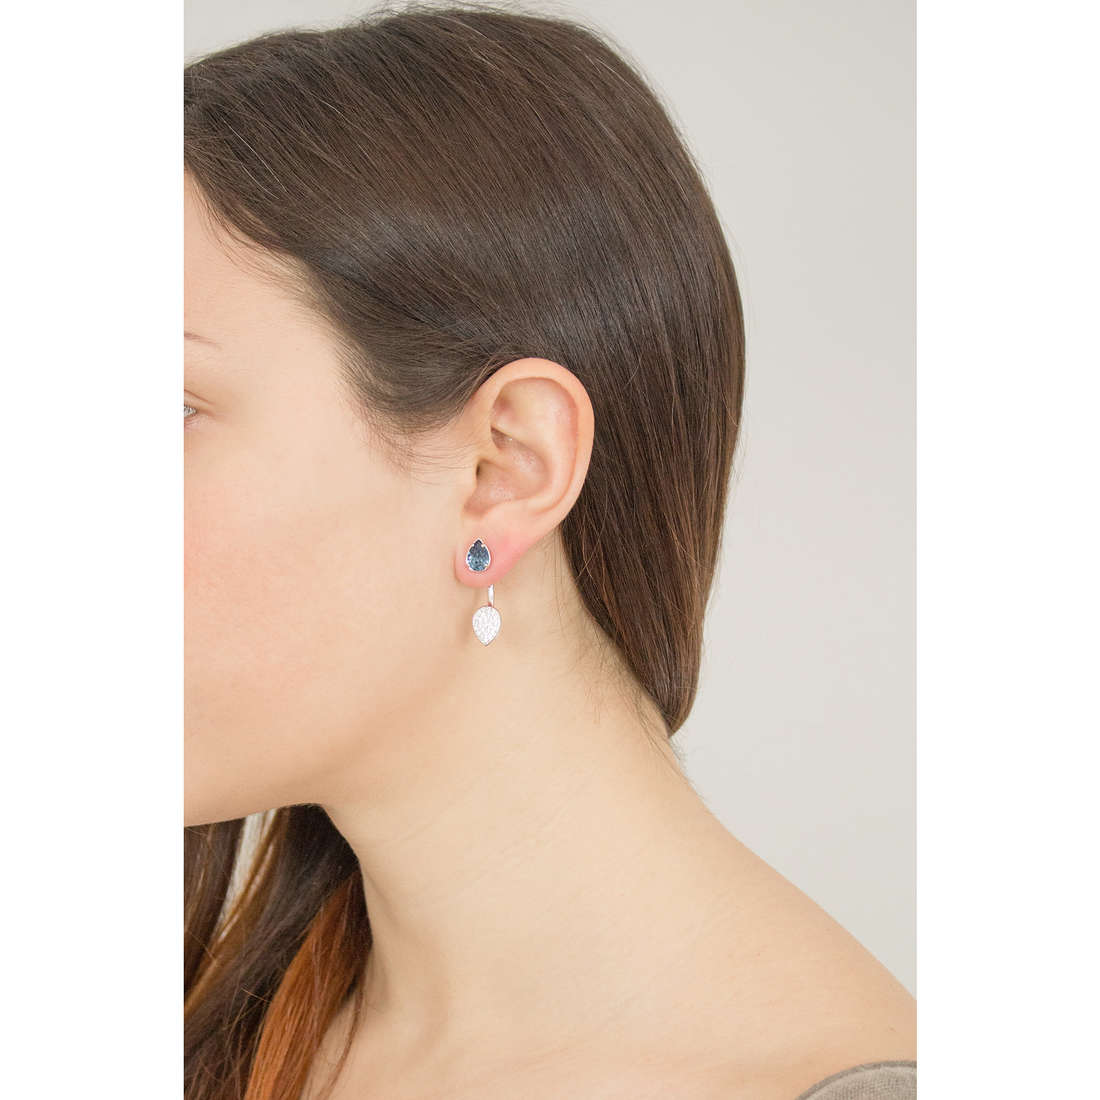 Brosway boucles d'oreille Affinity femme BFF49 photo wearing